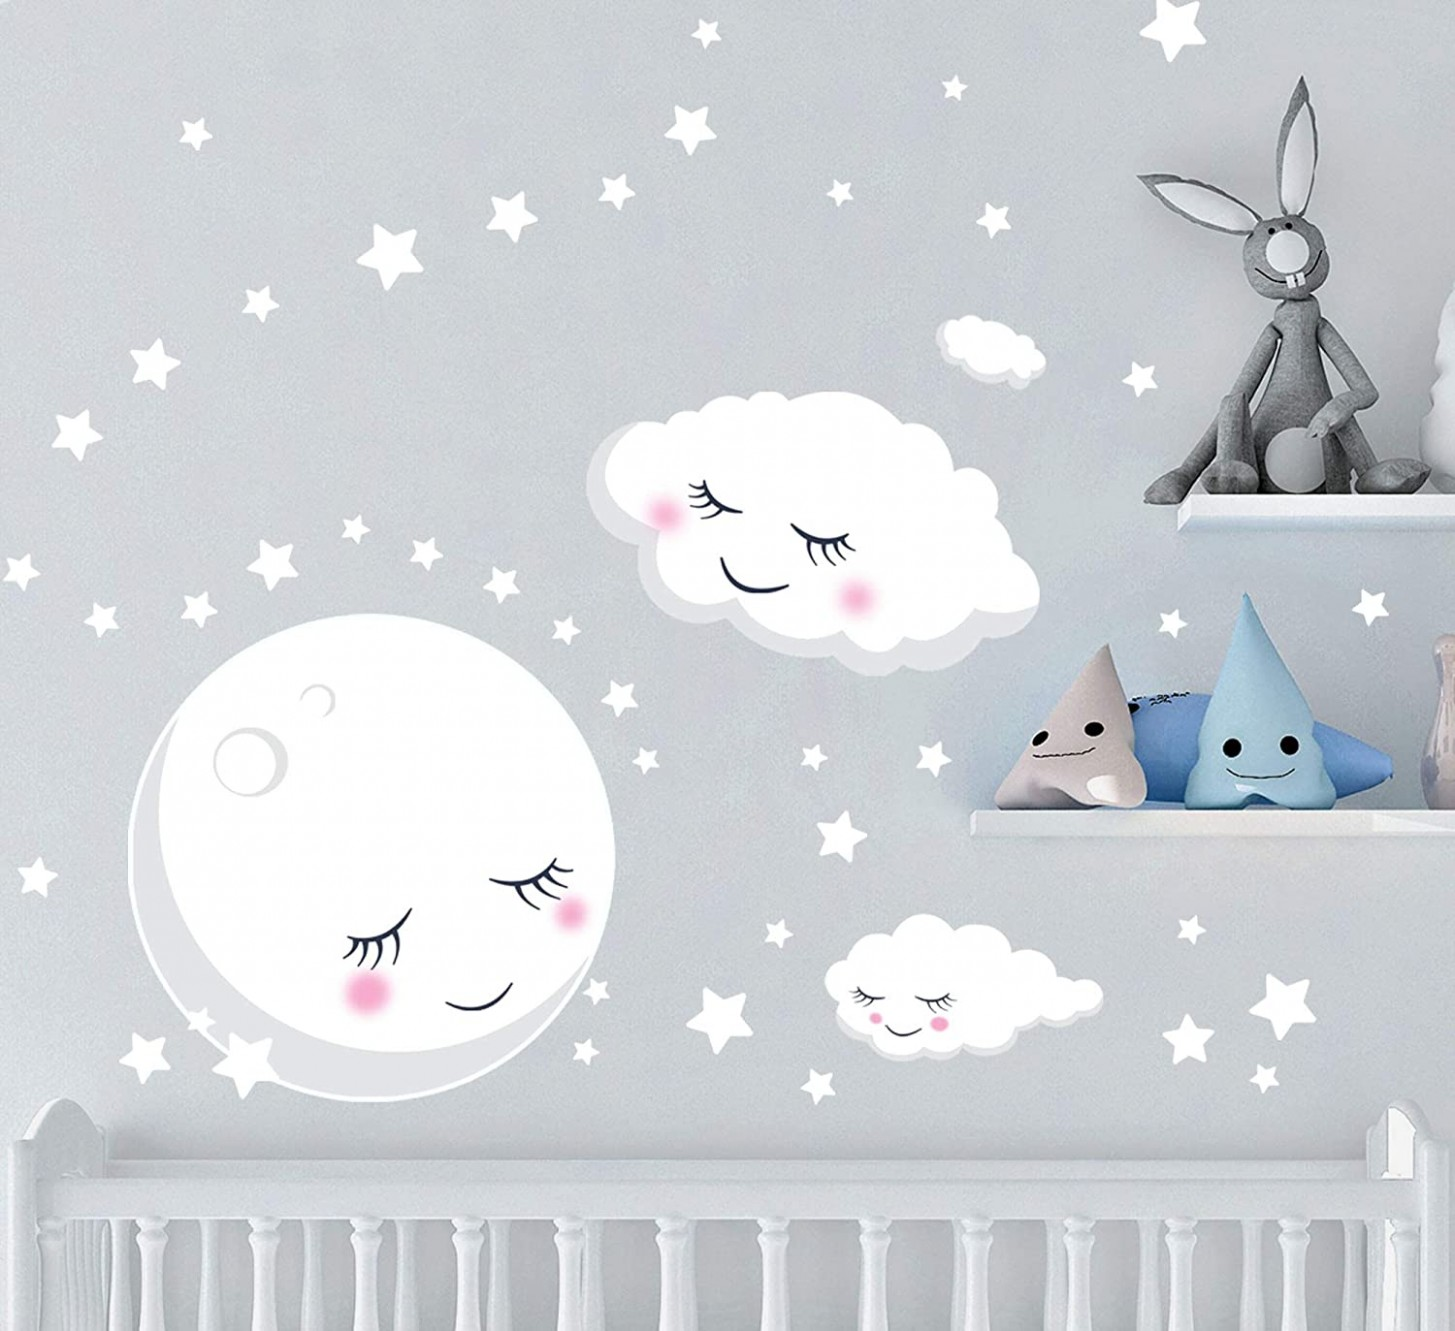 Create-A-Mural Nursery Wall Decals Baby Room Decor w/Moon Stars Clouds Wall  Stickers (9) Room Decal Pieces - Baby Room Decals